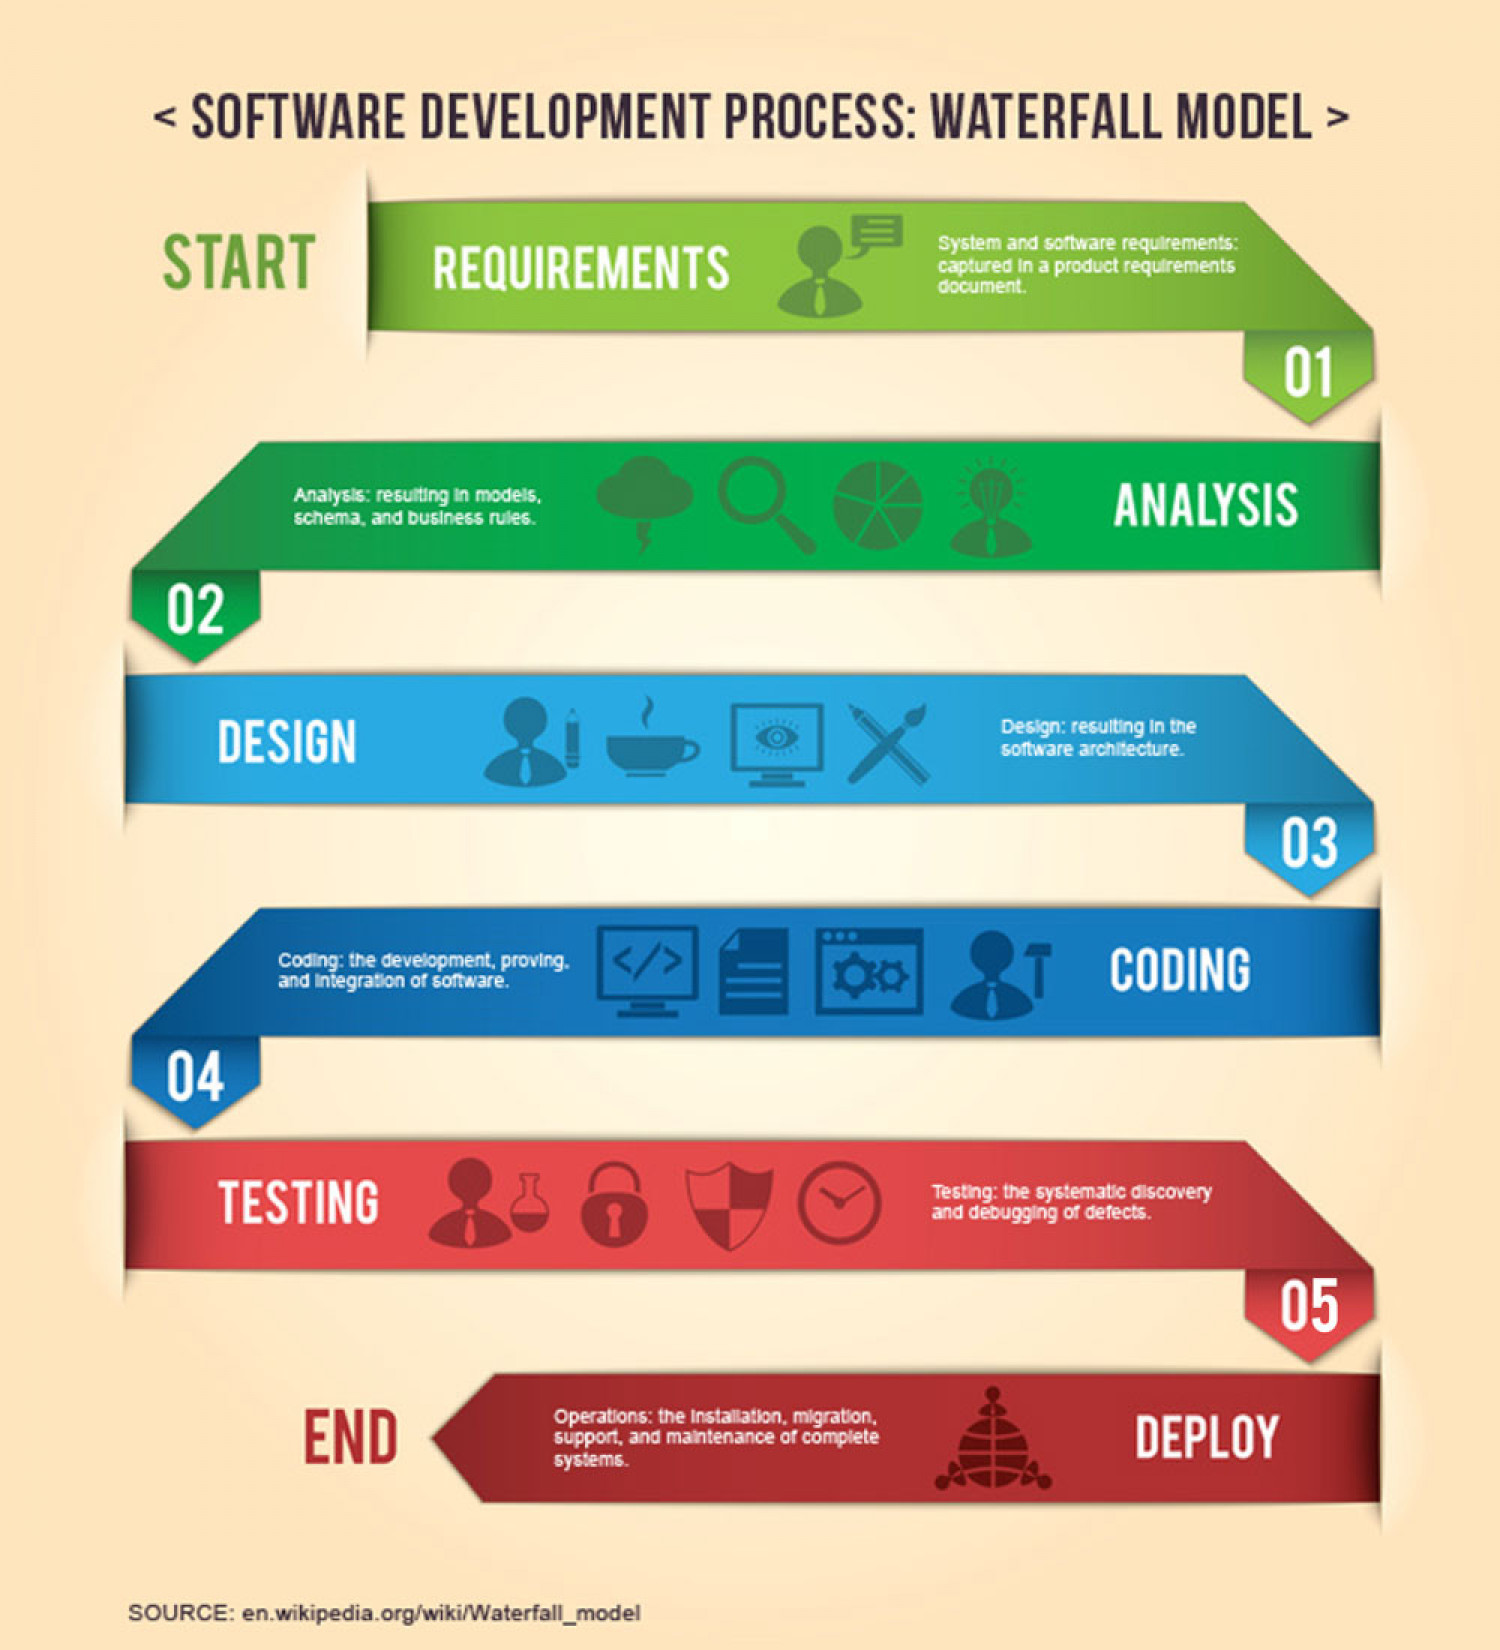 Software development process waterfall model for Waterfall method steps